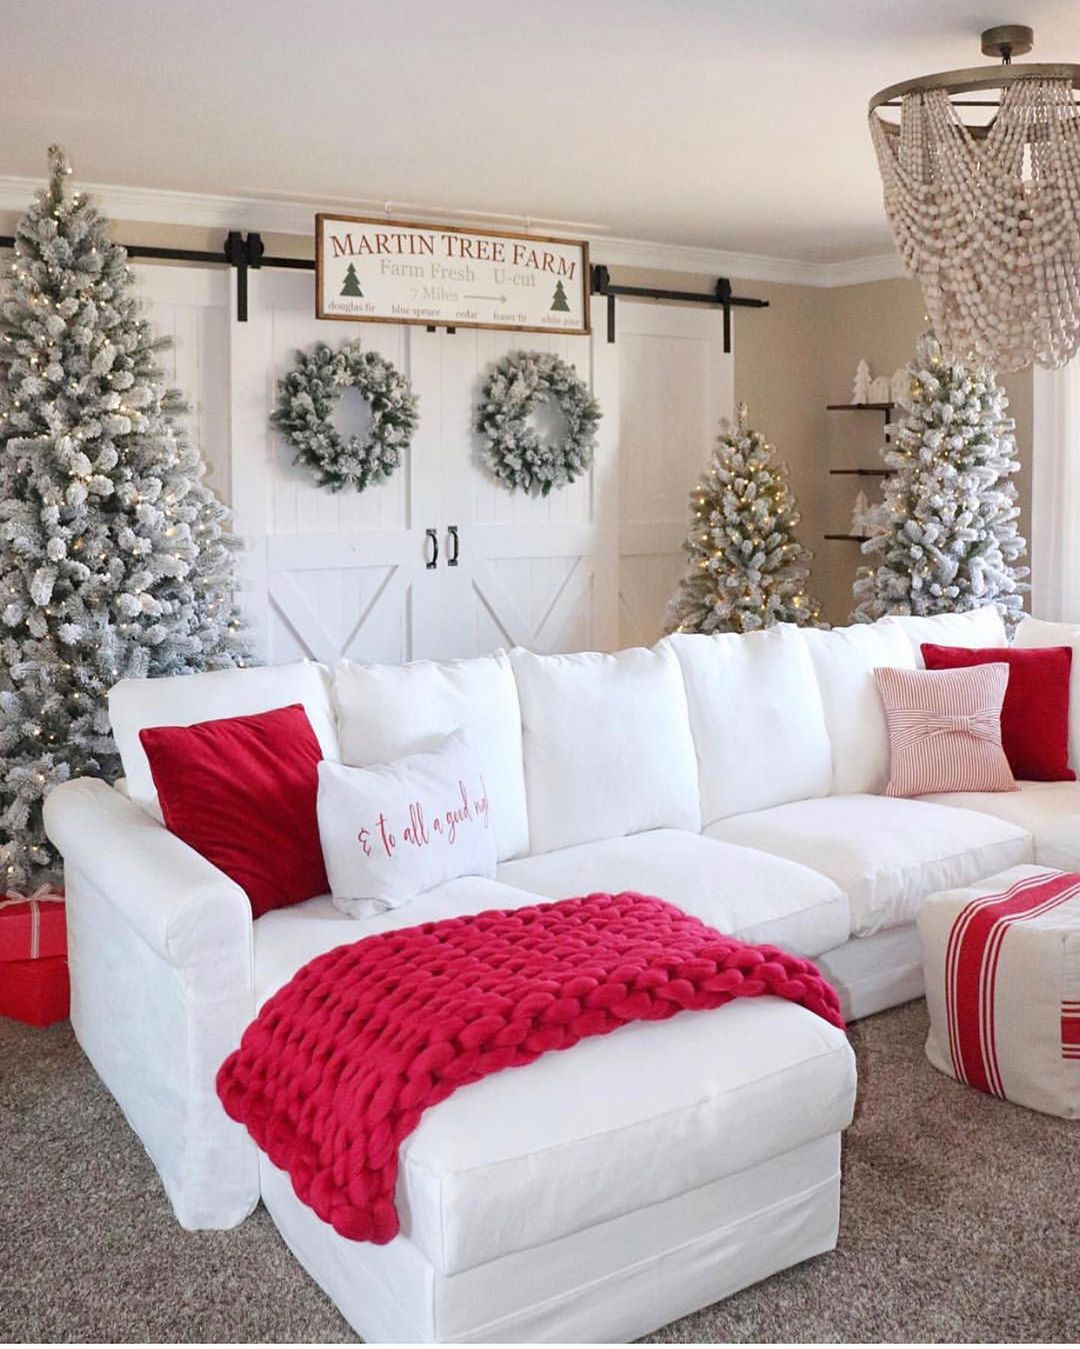 🎄King Of Christmas Giveaway Two Winners Kingofchristmas - Home Decor